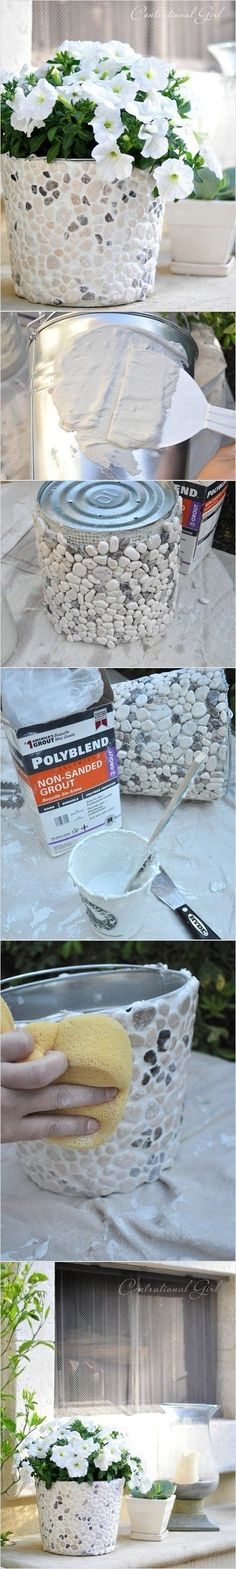 Make your own stone flower pot....I'd love to do with tile mosaics